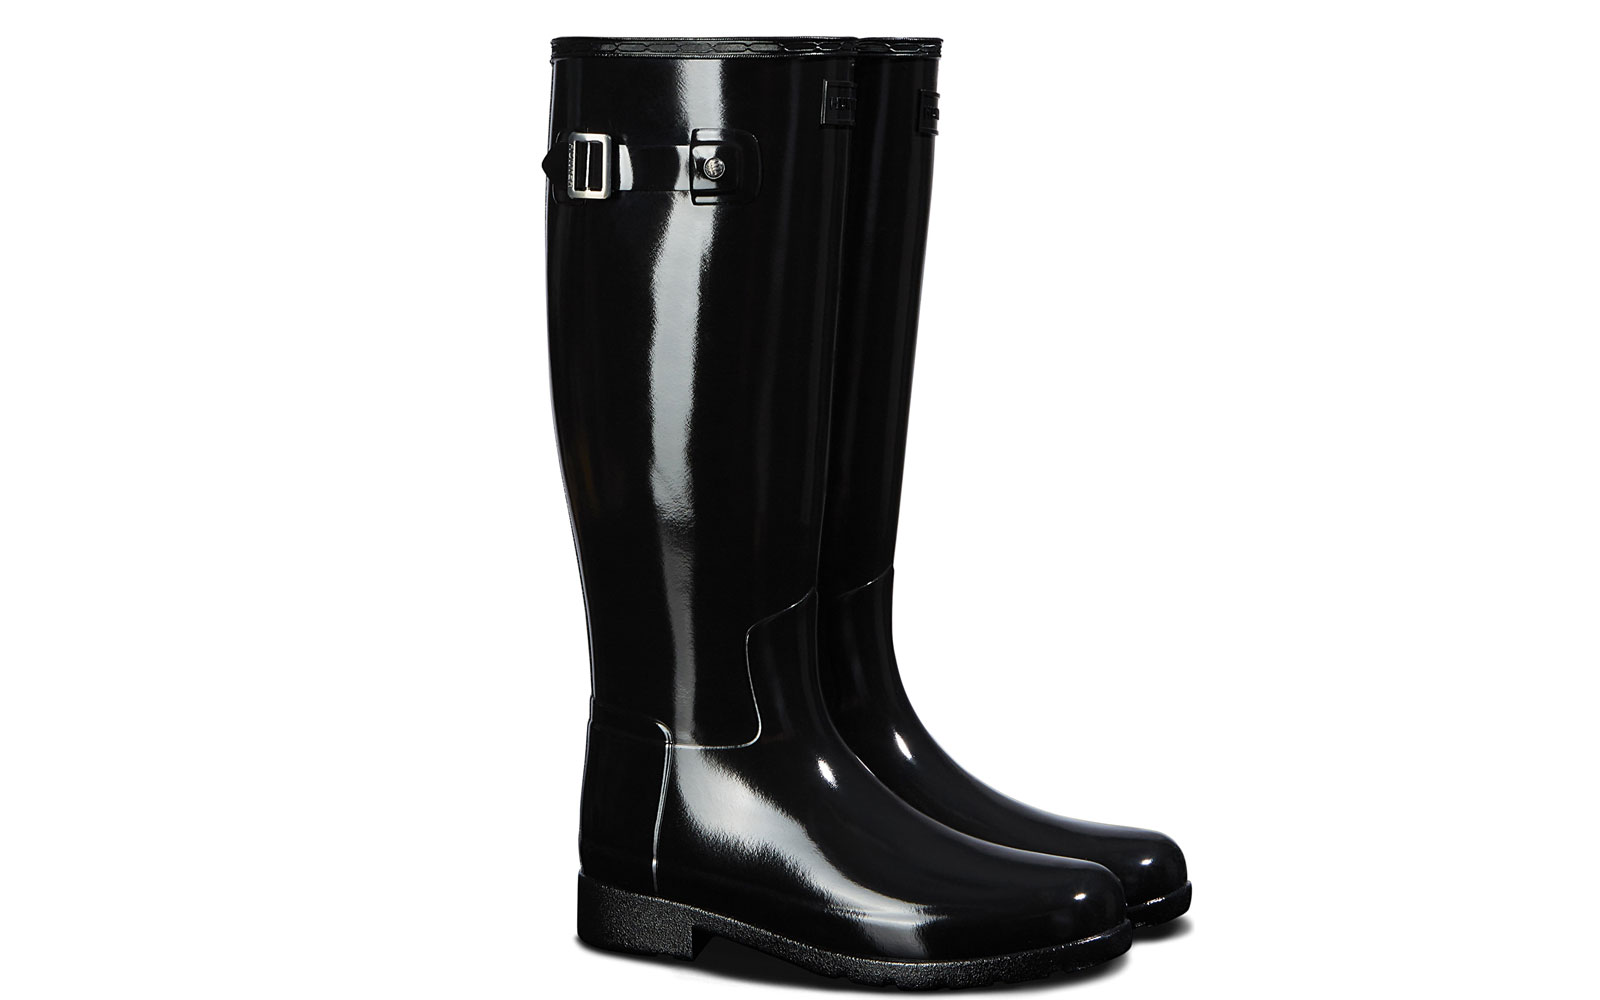 Women's tall black rain boots